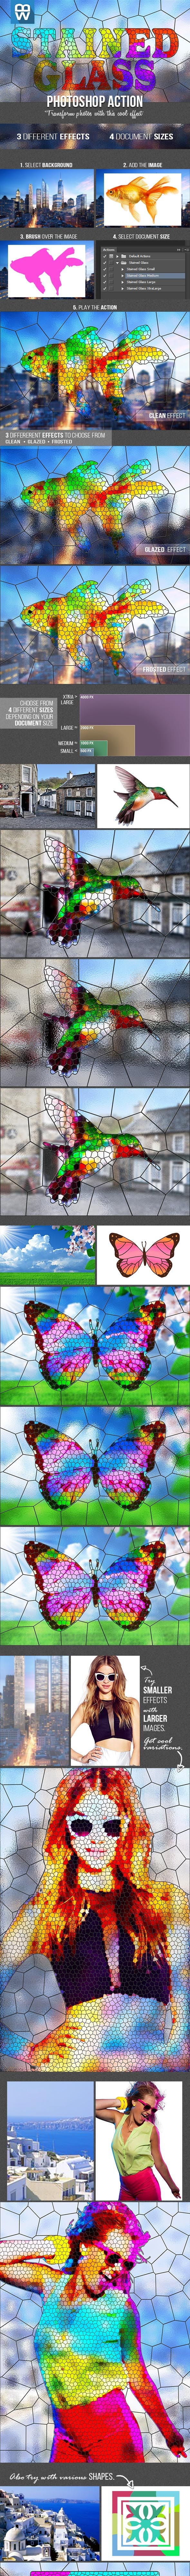 Stained Glass Photoshop Action - Photo Effects Actions